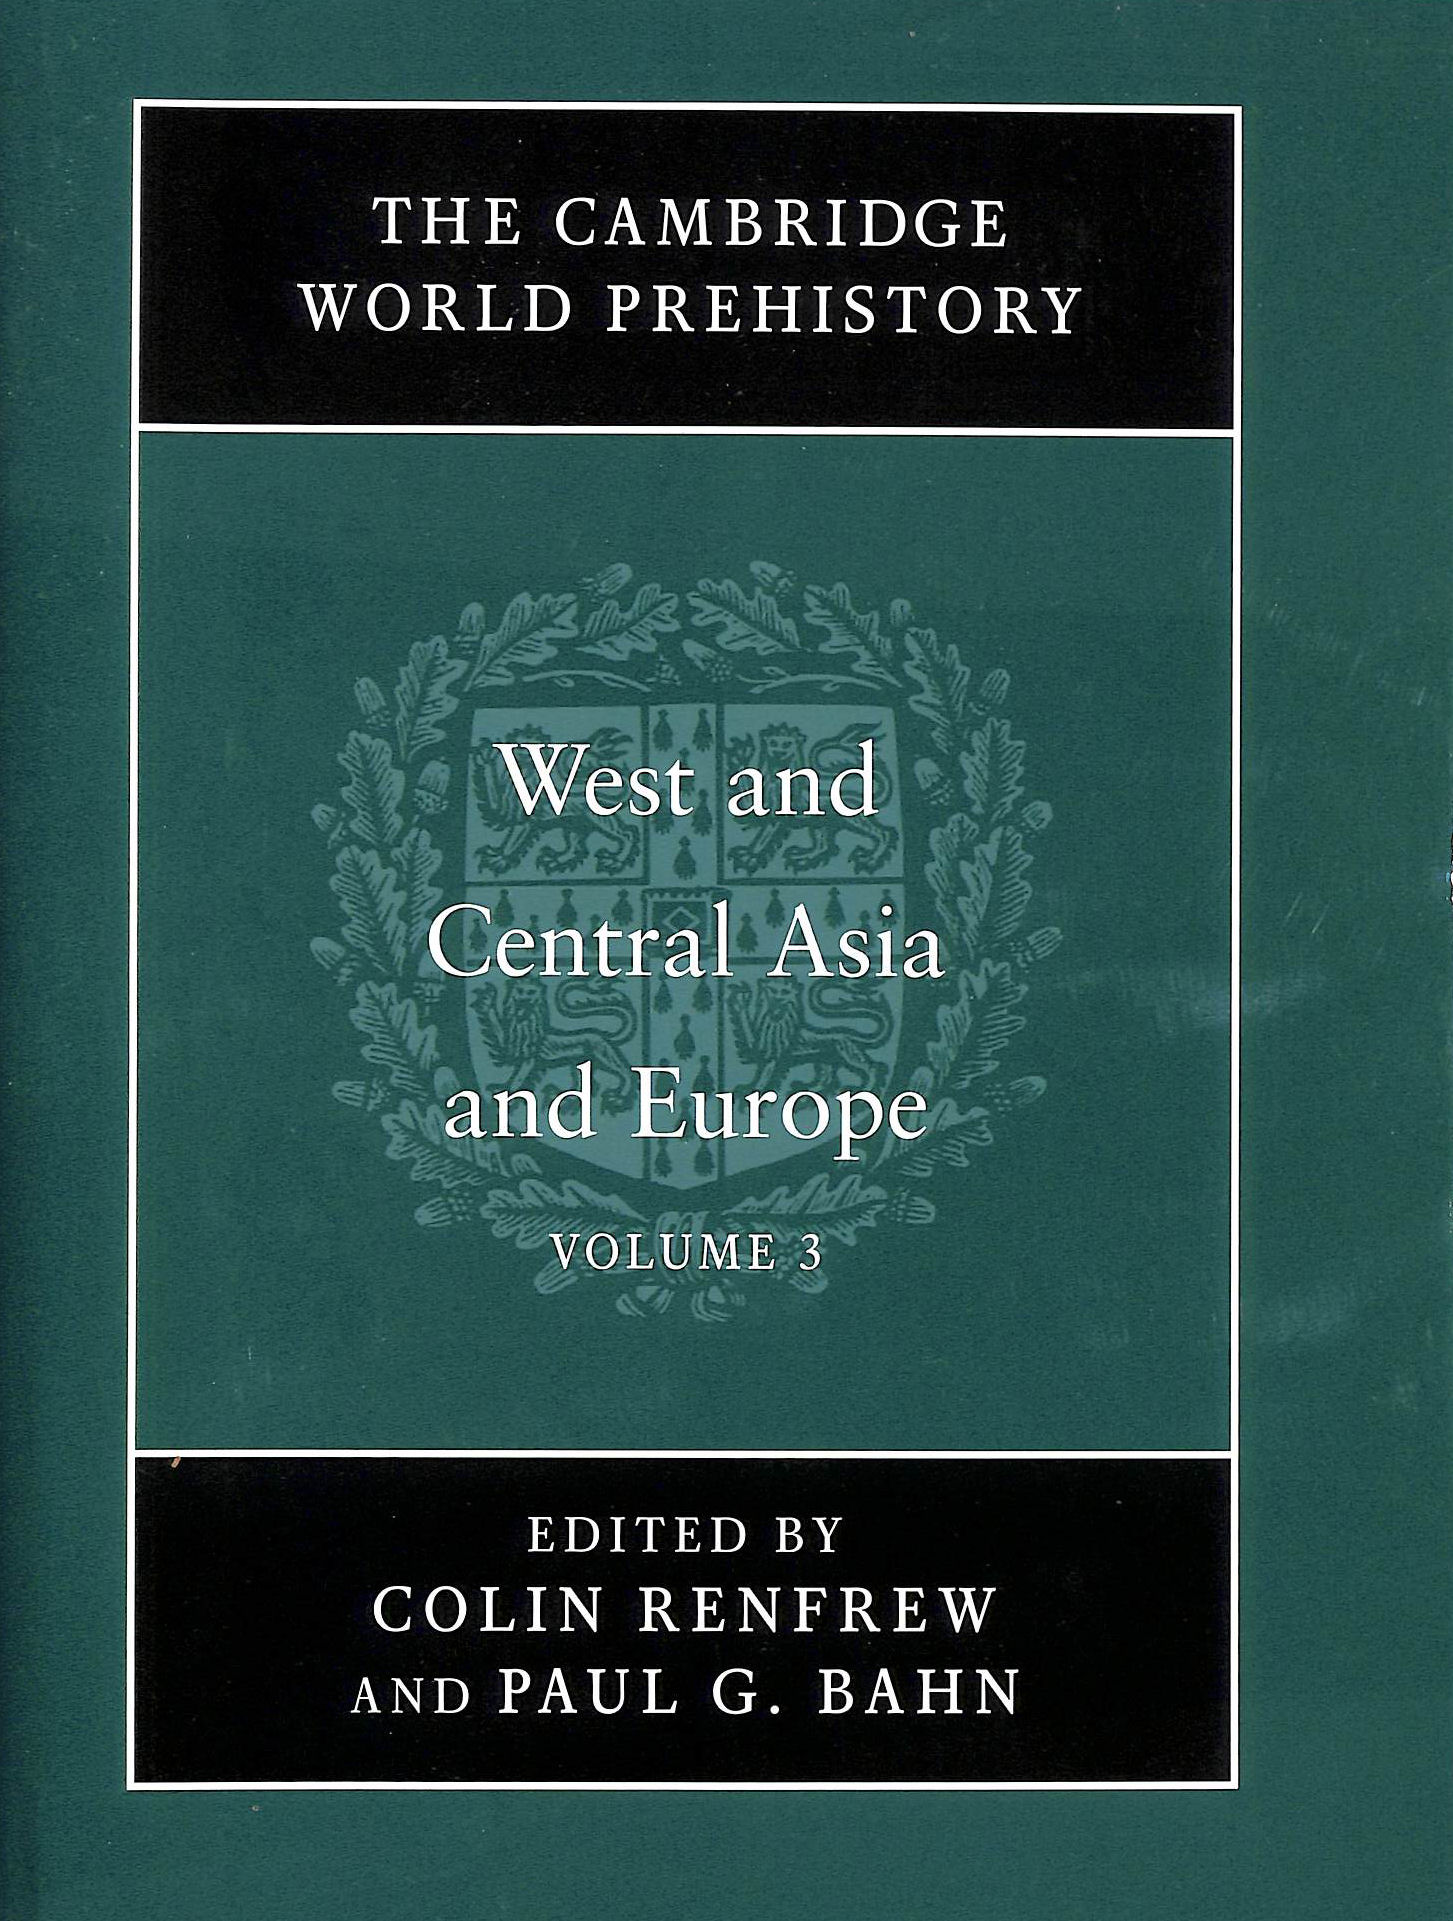 Image for The Cambridge world prehistory Volume 3: West and Central Asia and Europe